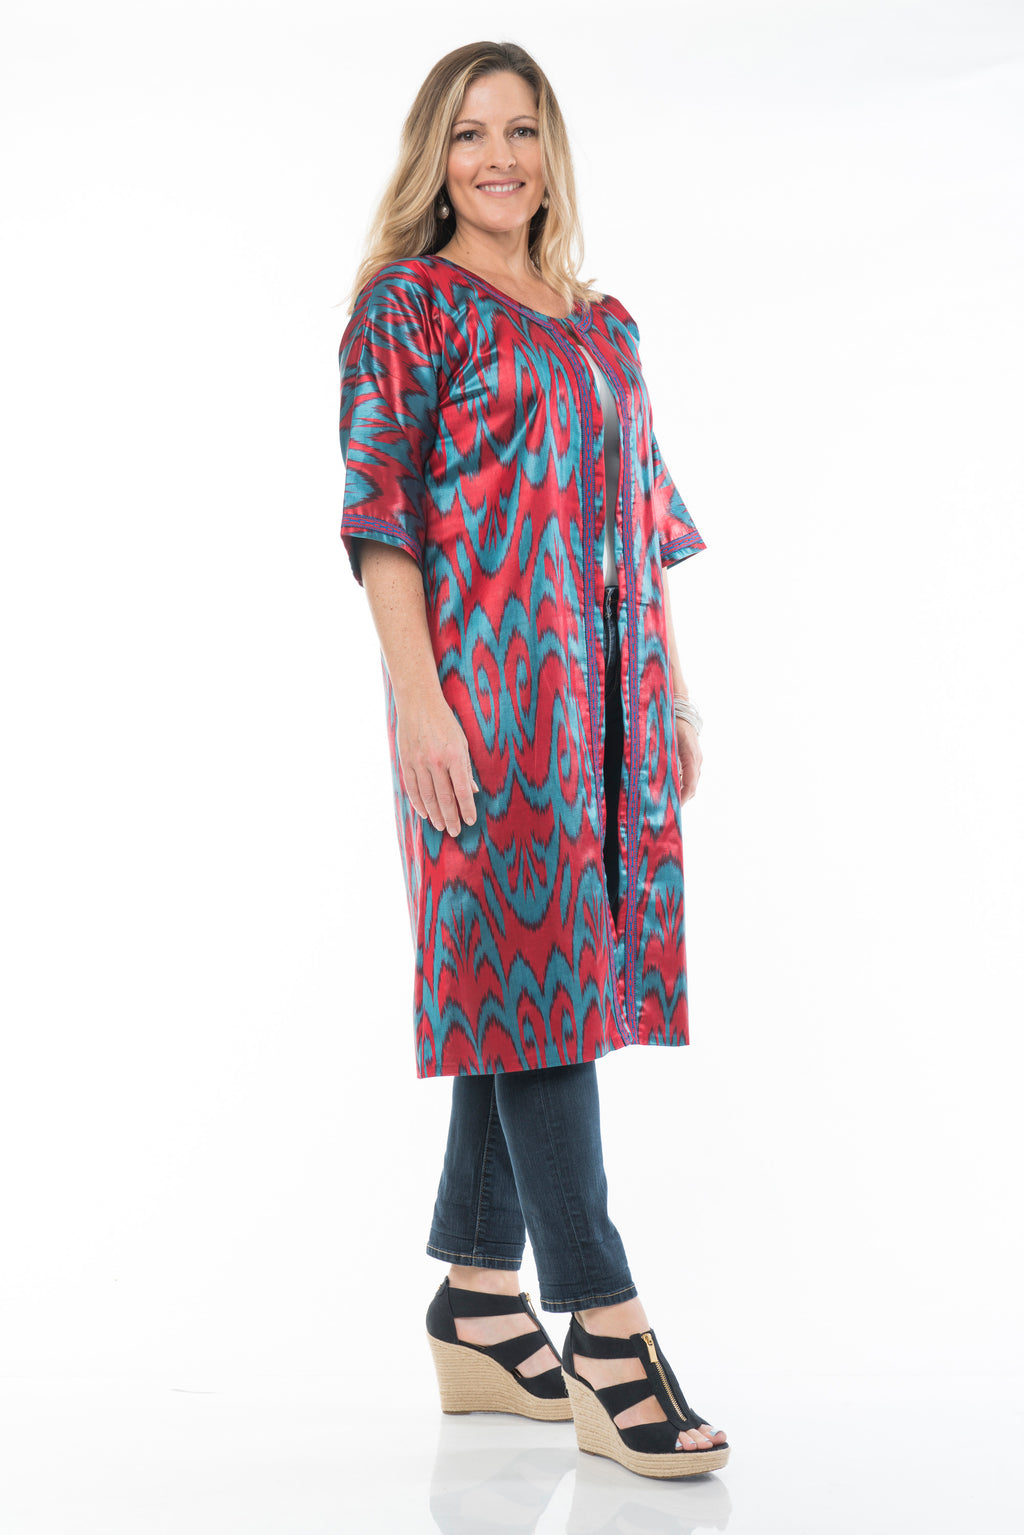 Rowan Silk Ikat Jacket, Large